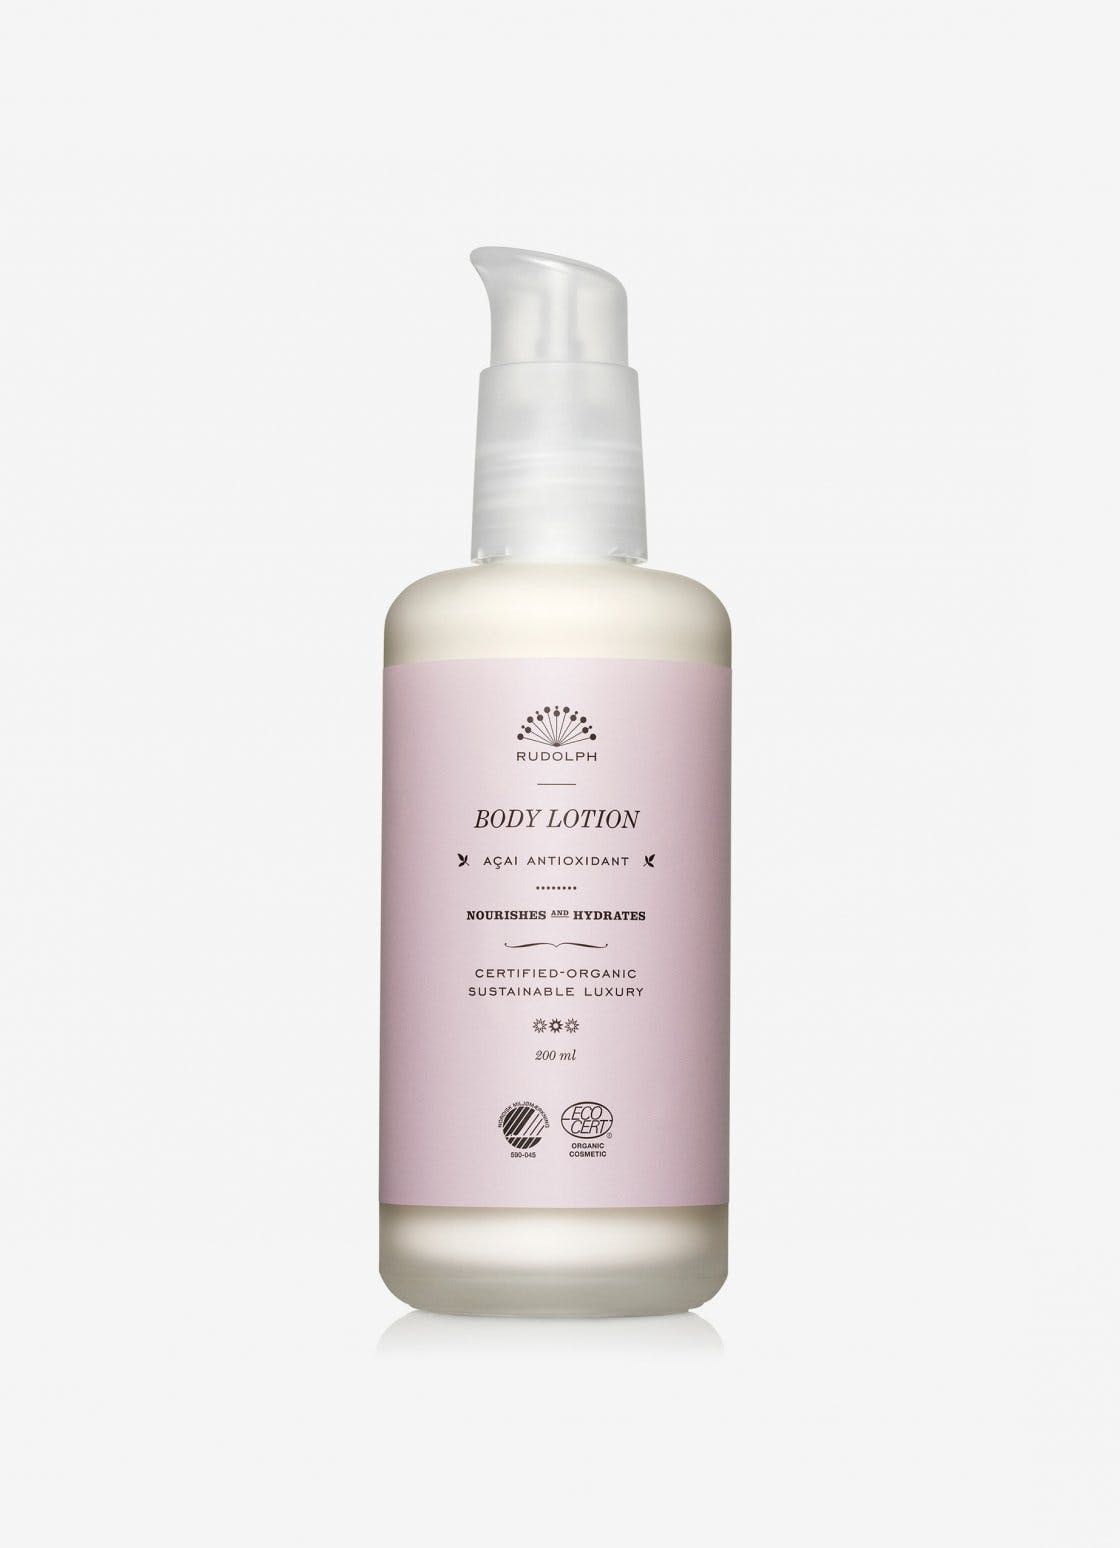 Rudolph Care bodylotion